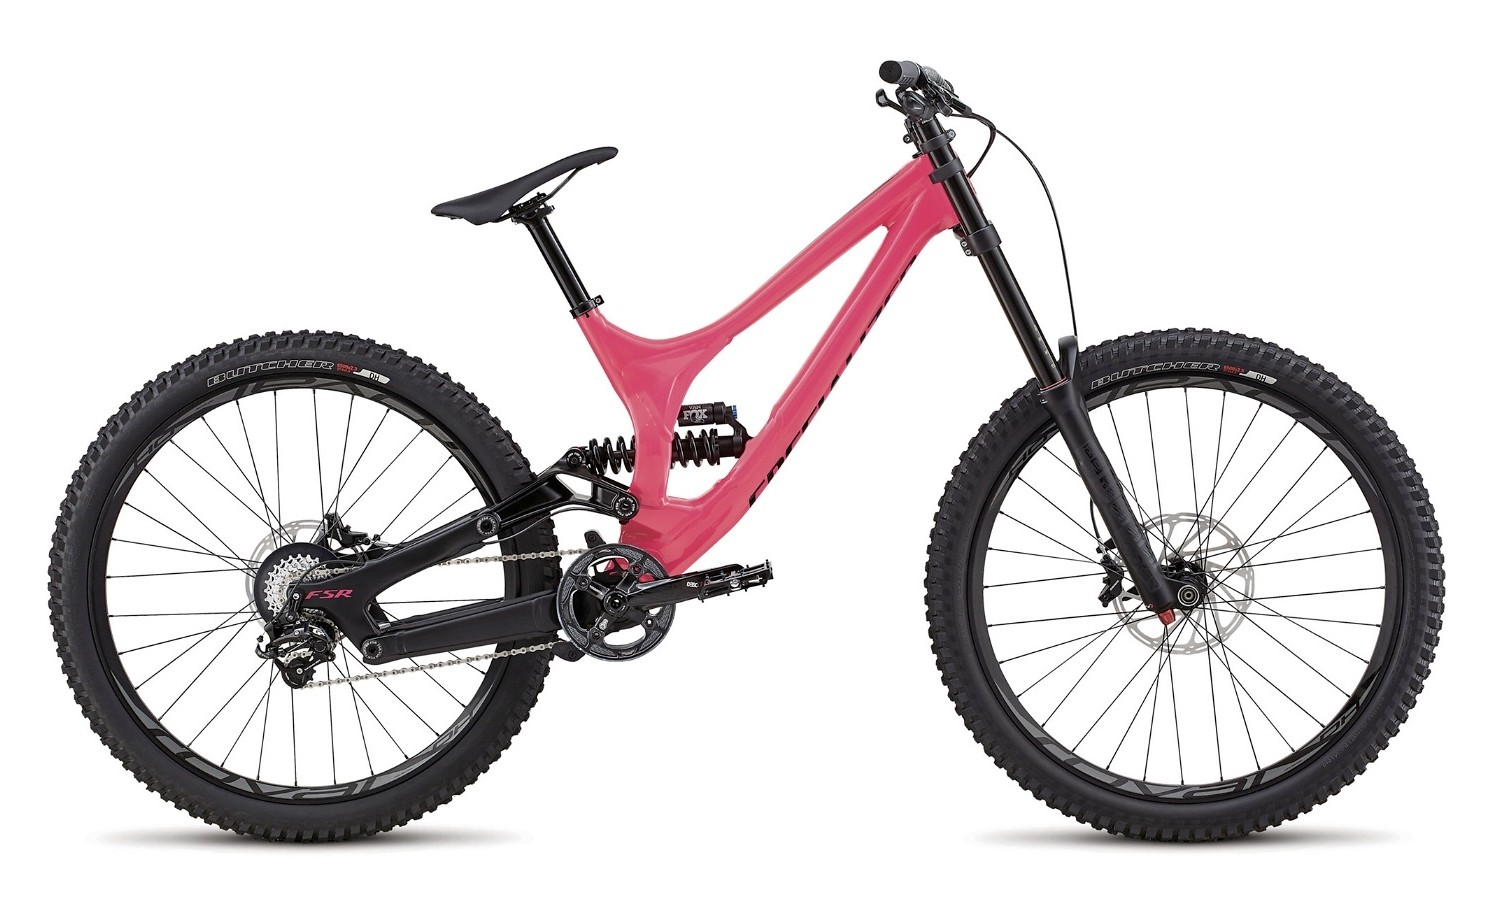 2018 Specialized Demo 8 I Alloy Bike - Reviews, Comparisons, Specs ...